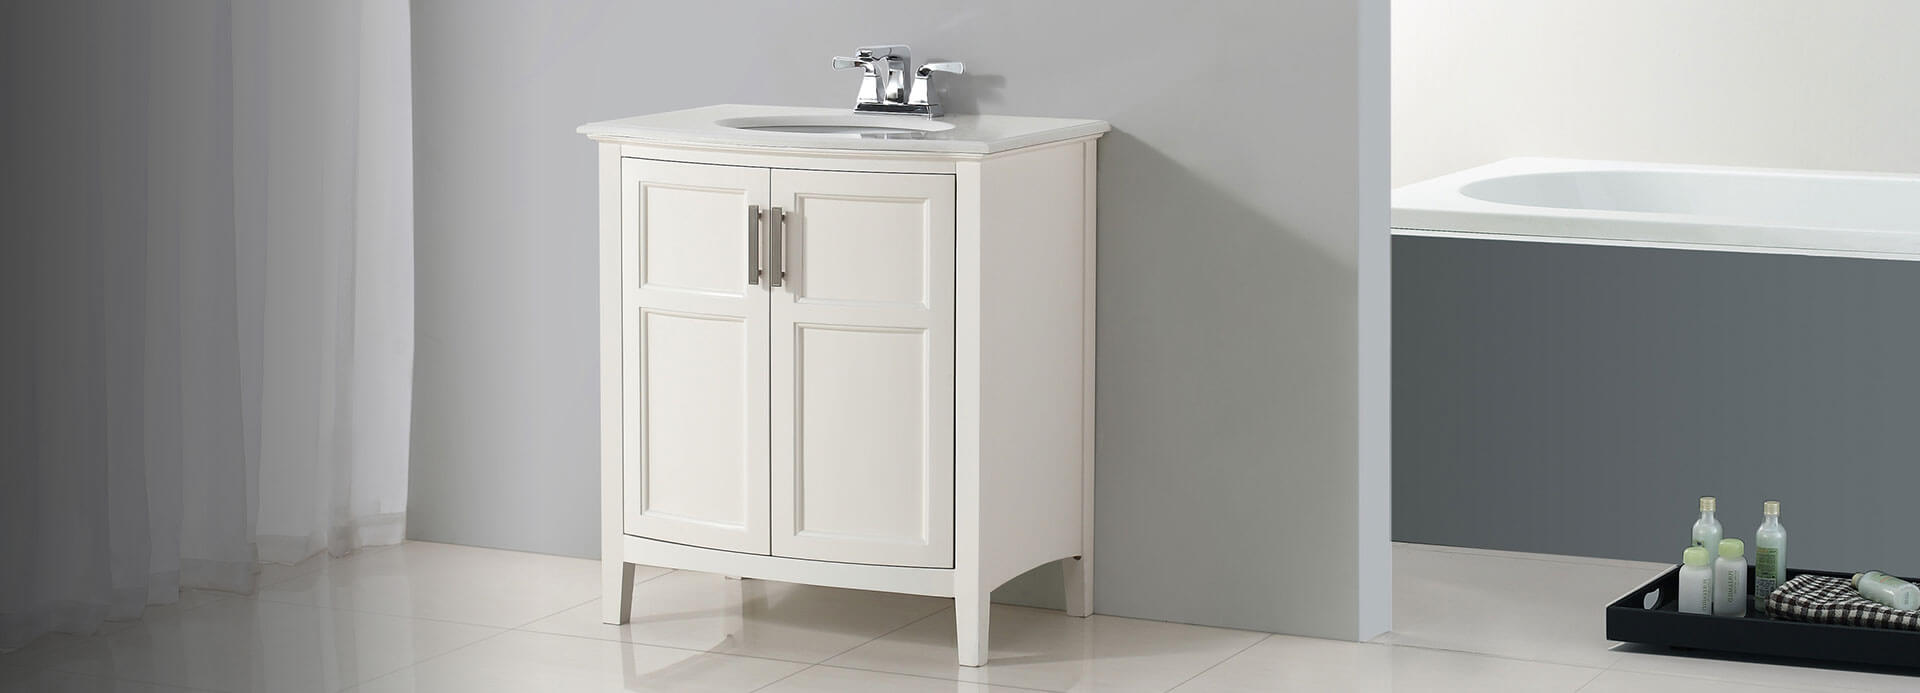 Bathroom furniture for Bathroom furniture